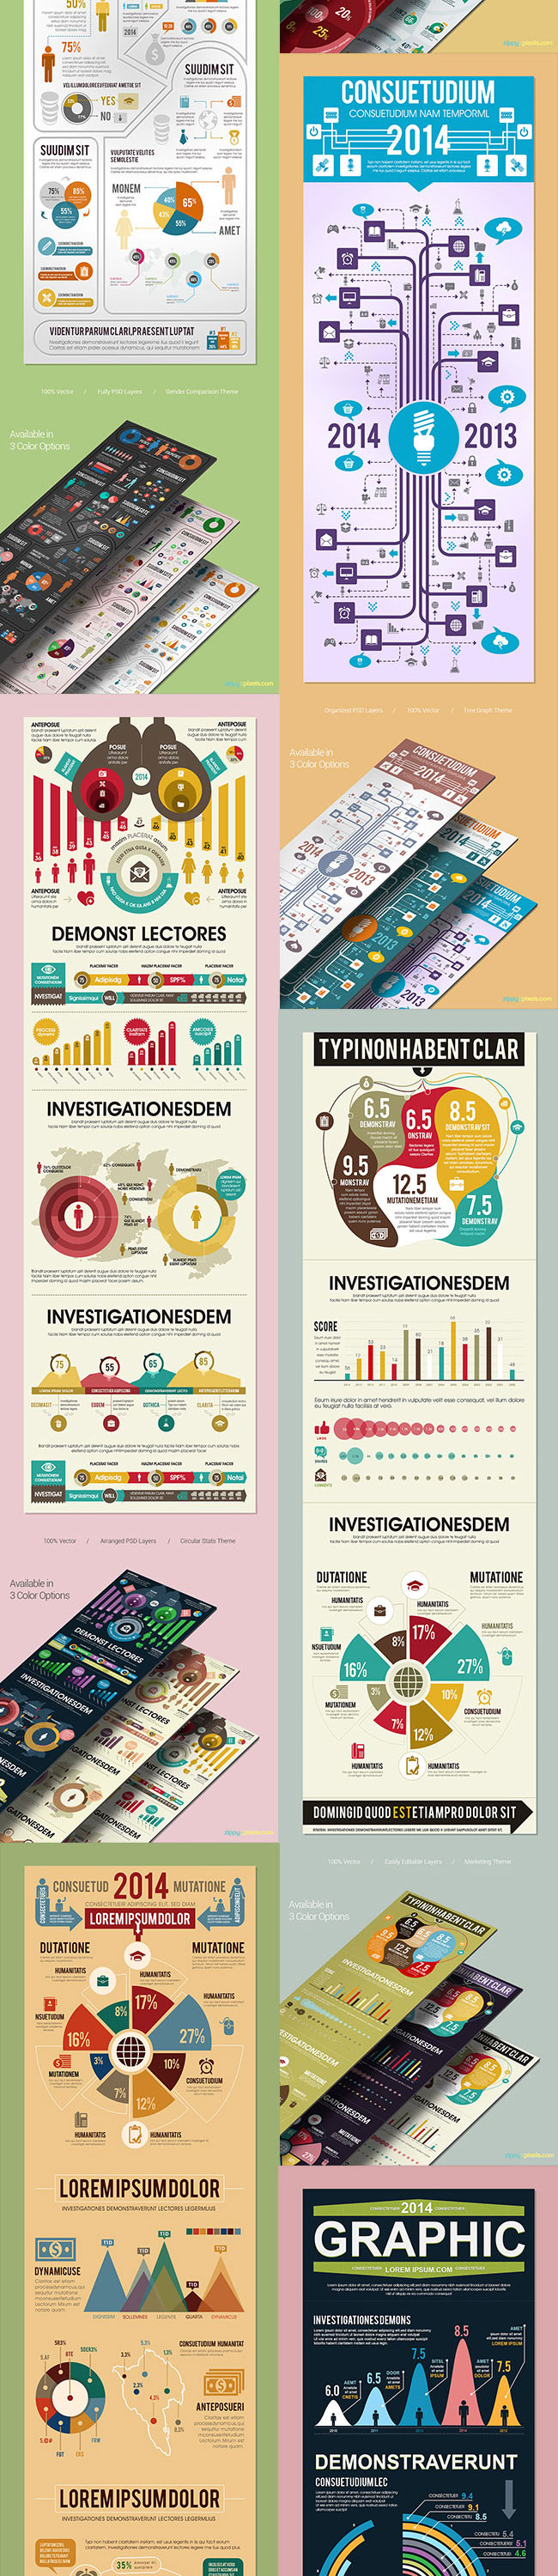 mega bundle of 105 incredible infographic templates only 27